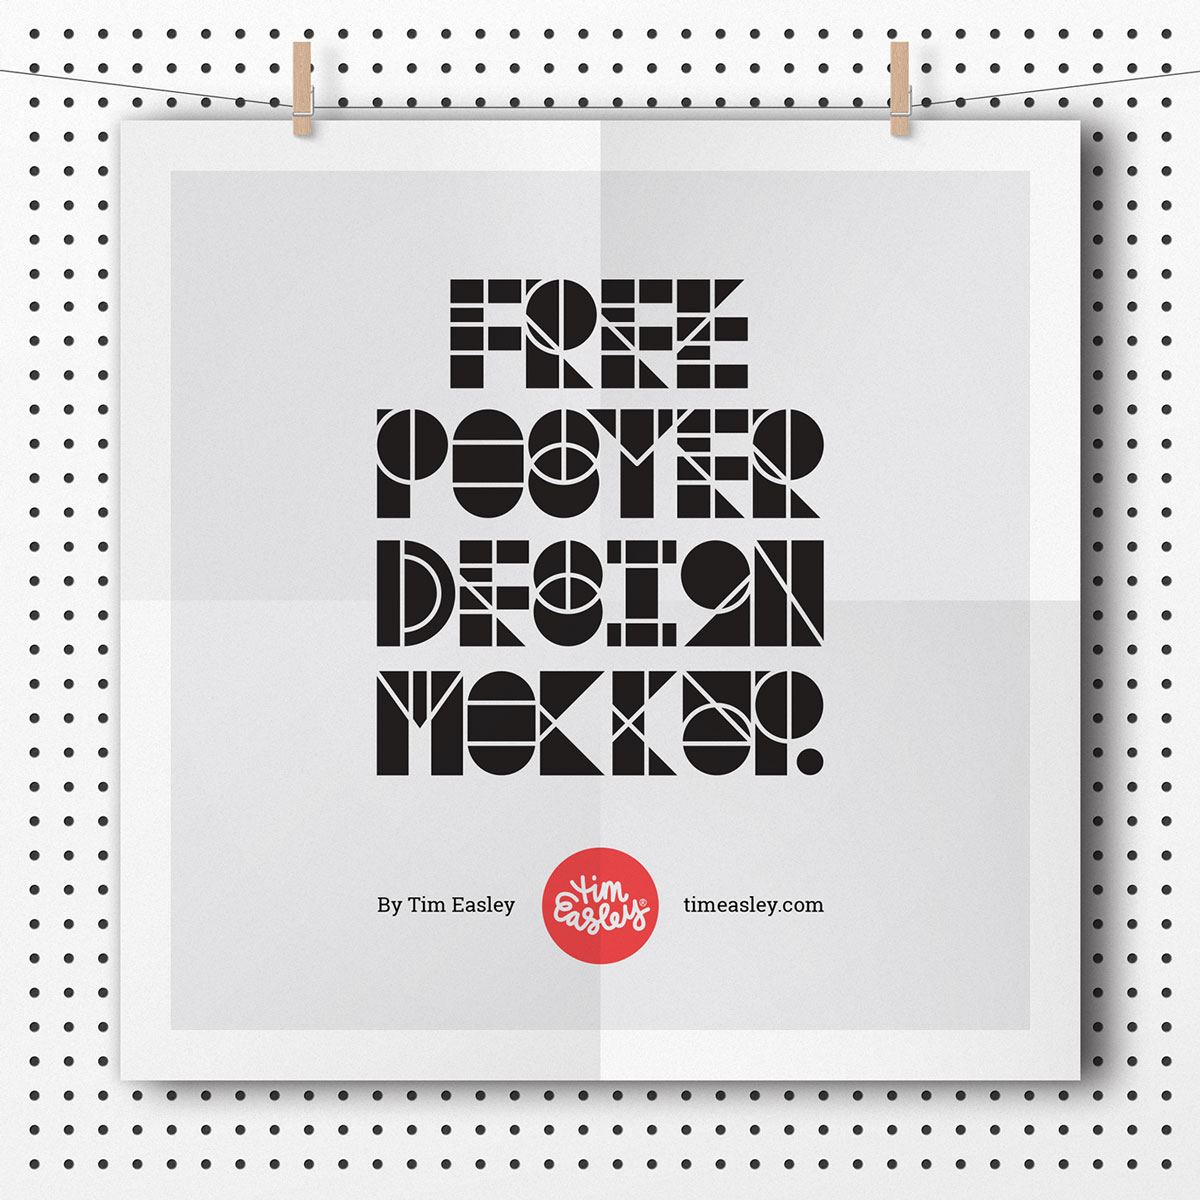 Multipurpose-Poster-Mockups-For-Your-Creative-Poster-Designs-600-8